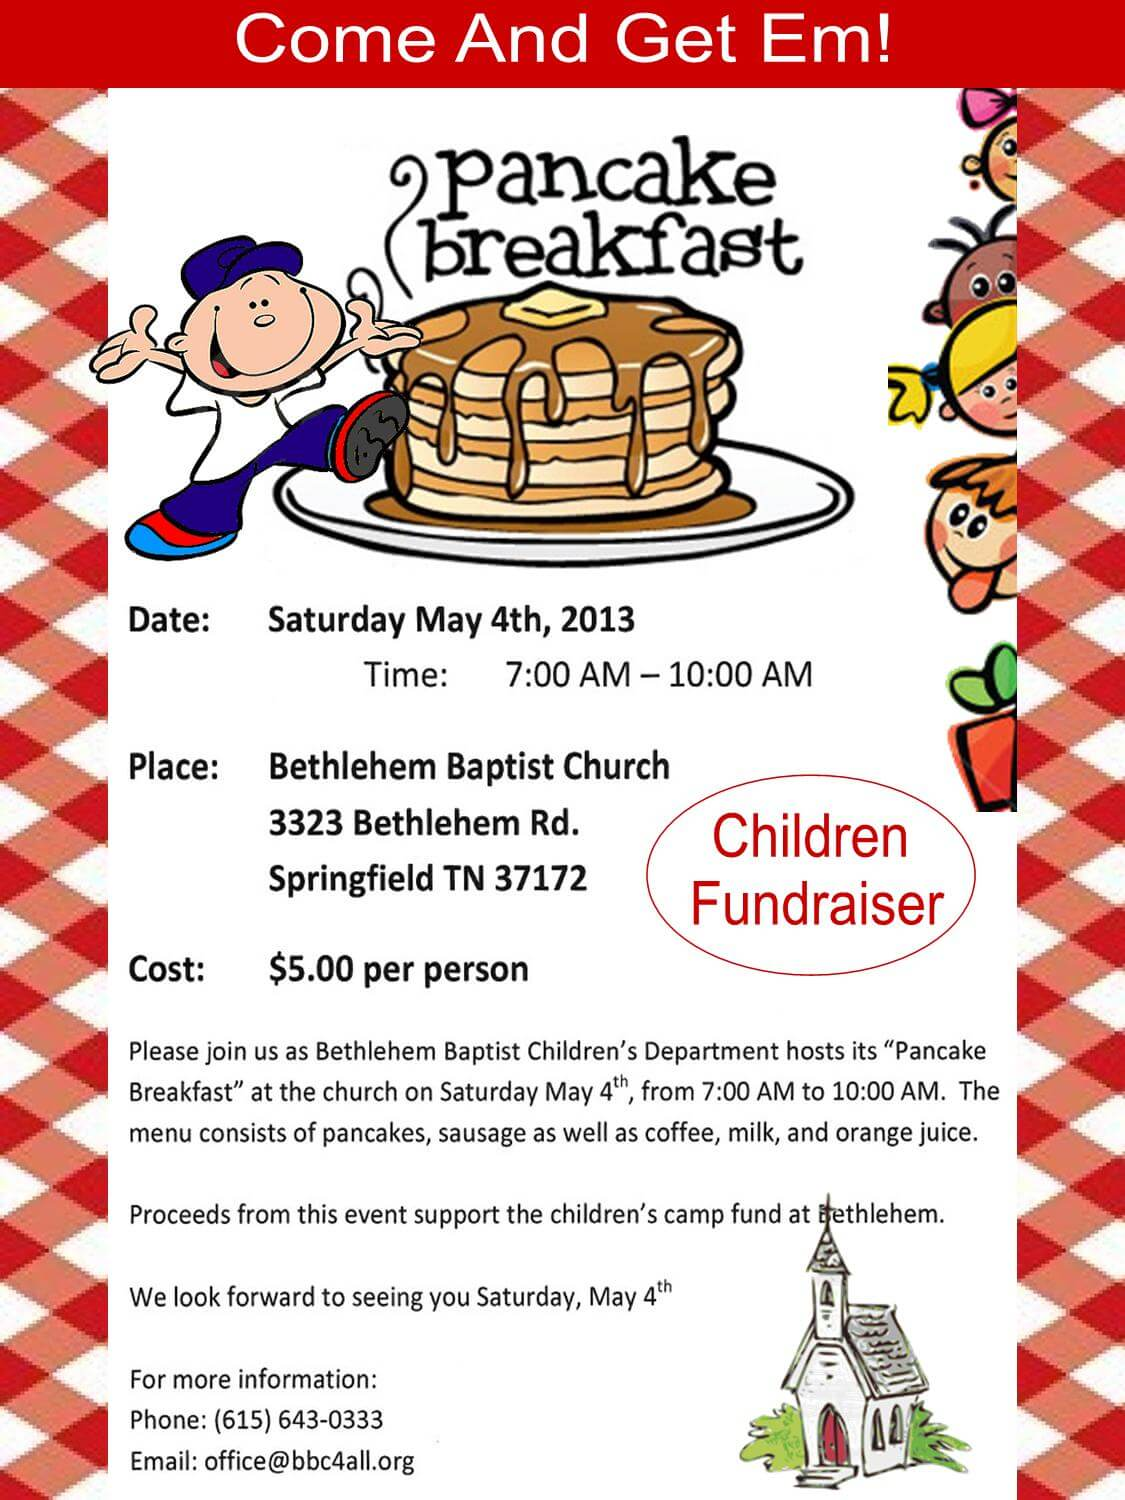 pancake breakfast fundraiser flyer template pancake breakfast flyer pancake breakfast bethlehem pancake breakfast fundraiser flyer template dimension n tk